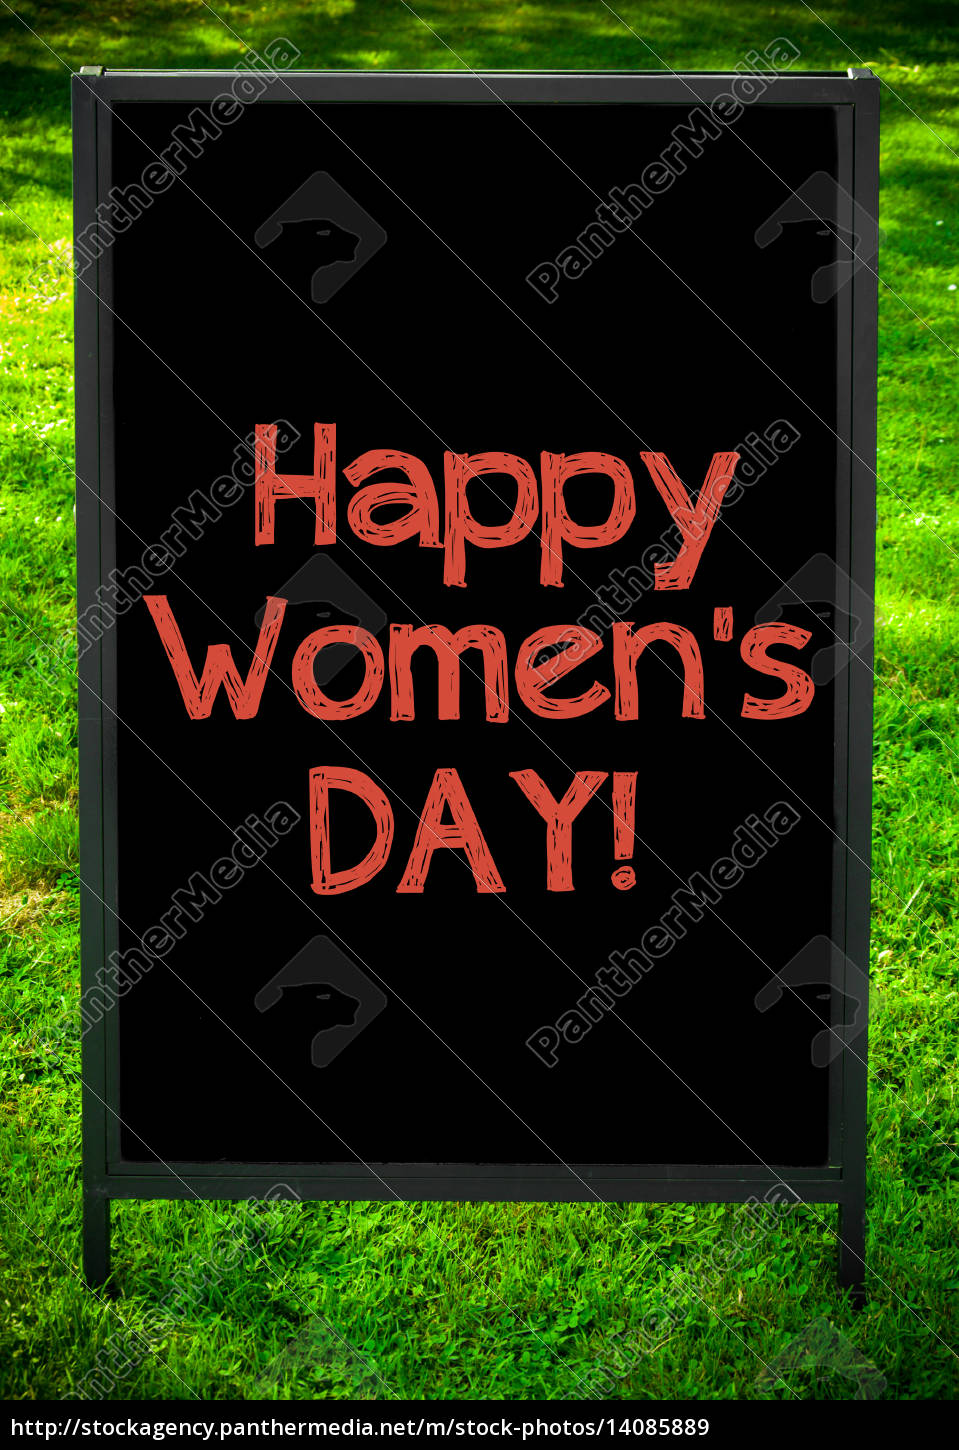 happy, women's, day - 14085889